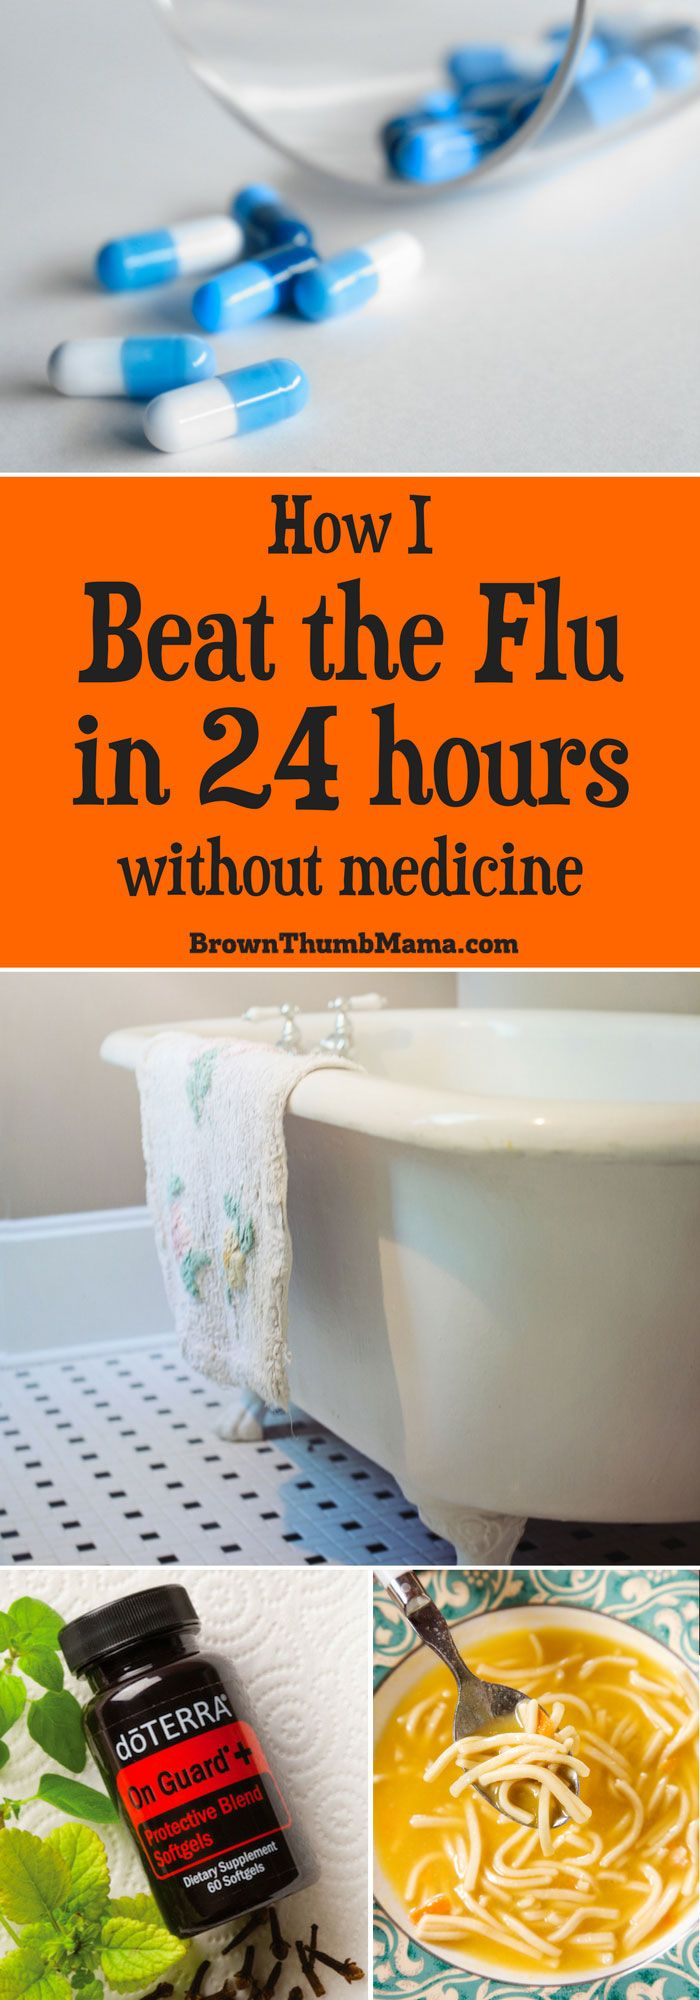 I beat the flu in 24 hours using only natural remedies. Stay away from synthetic medicines and their unpredictable side effects!